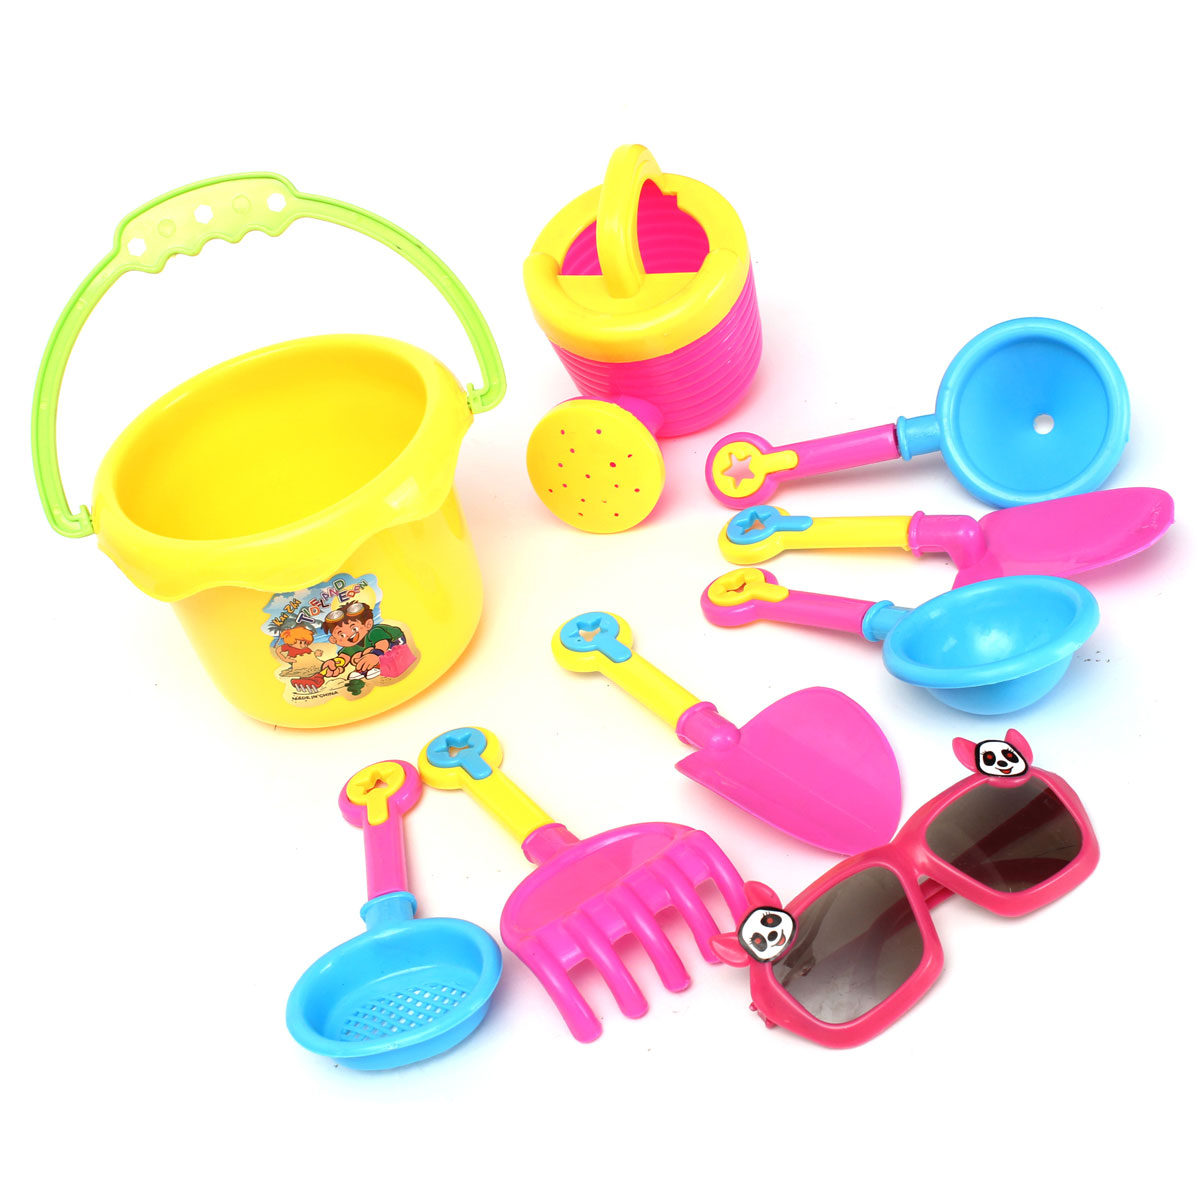 9Pcs Seaside Sand Sunglasses Spade Shovel Beach Play Water Tools Kids Toy Set